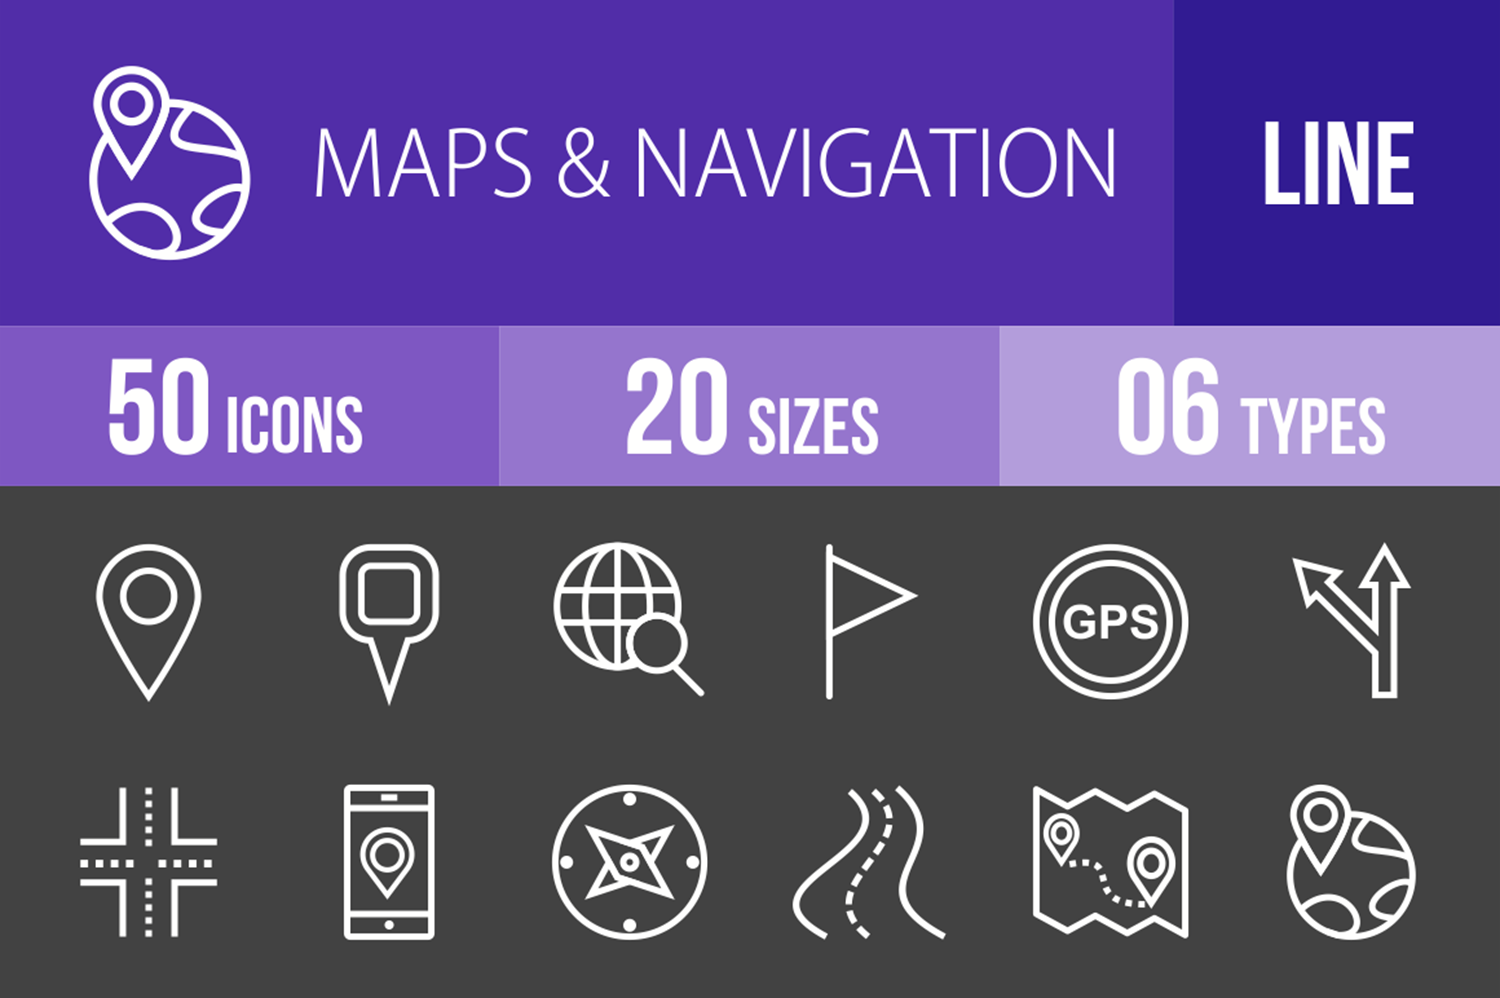 50 Maps & Navigation Line Inverted Icons example image 1